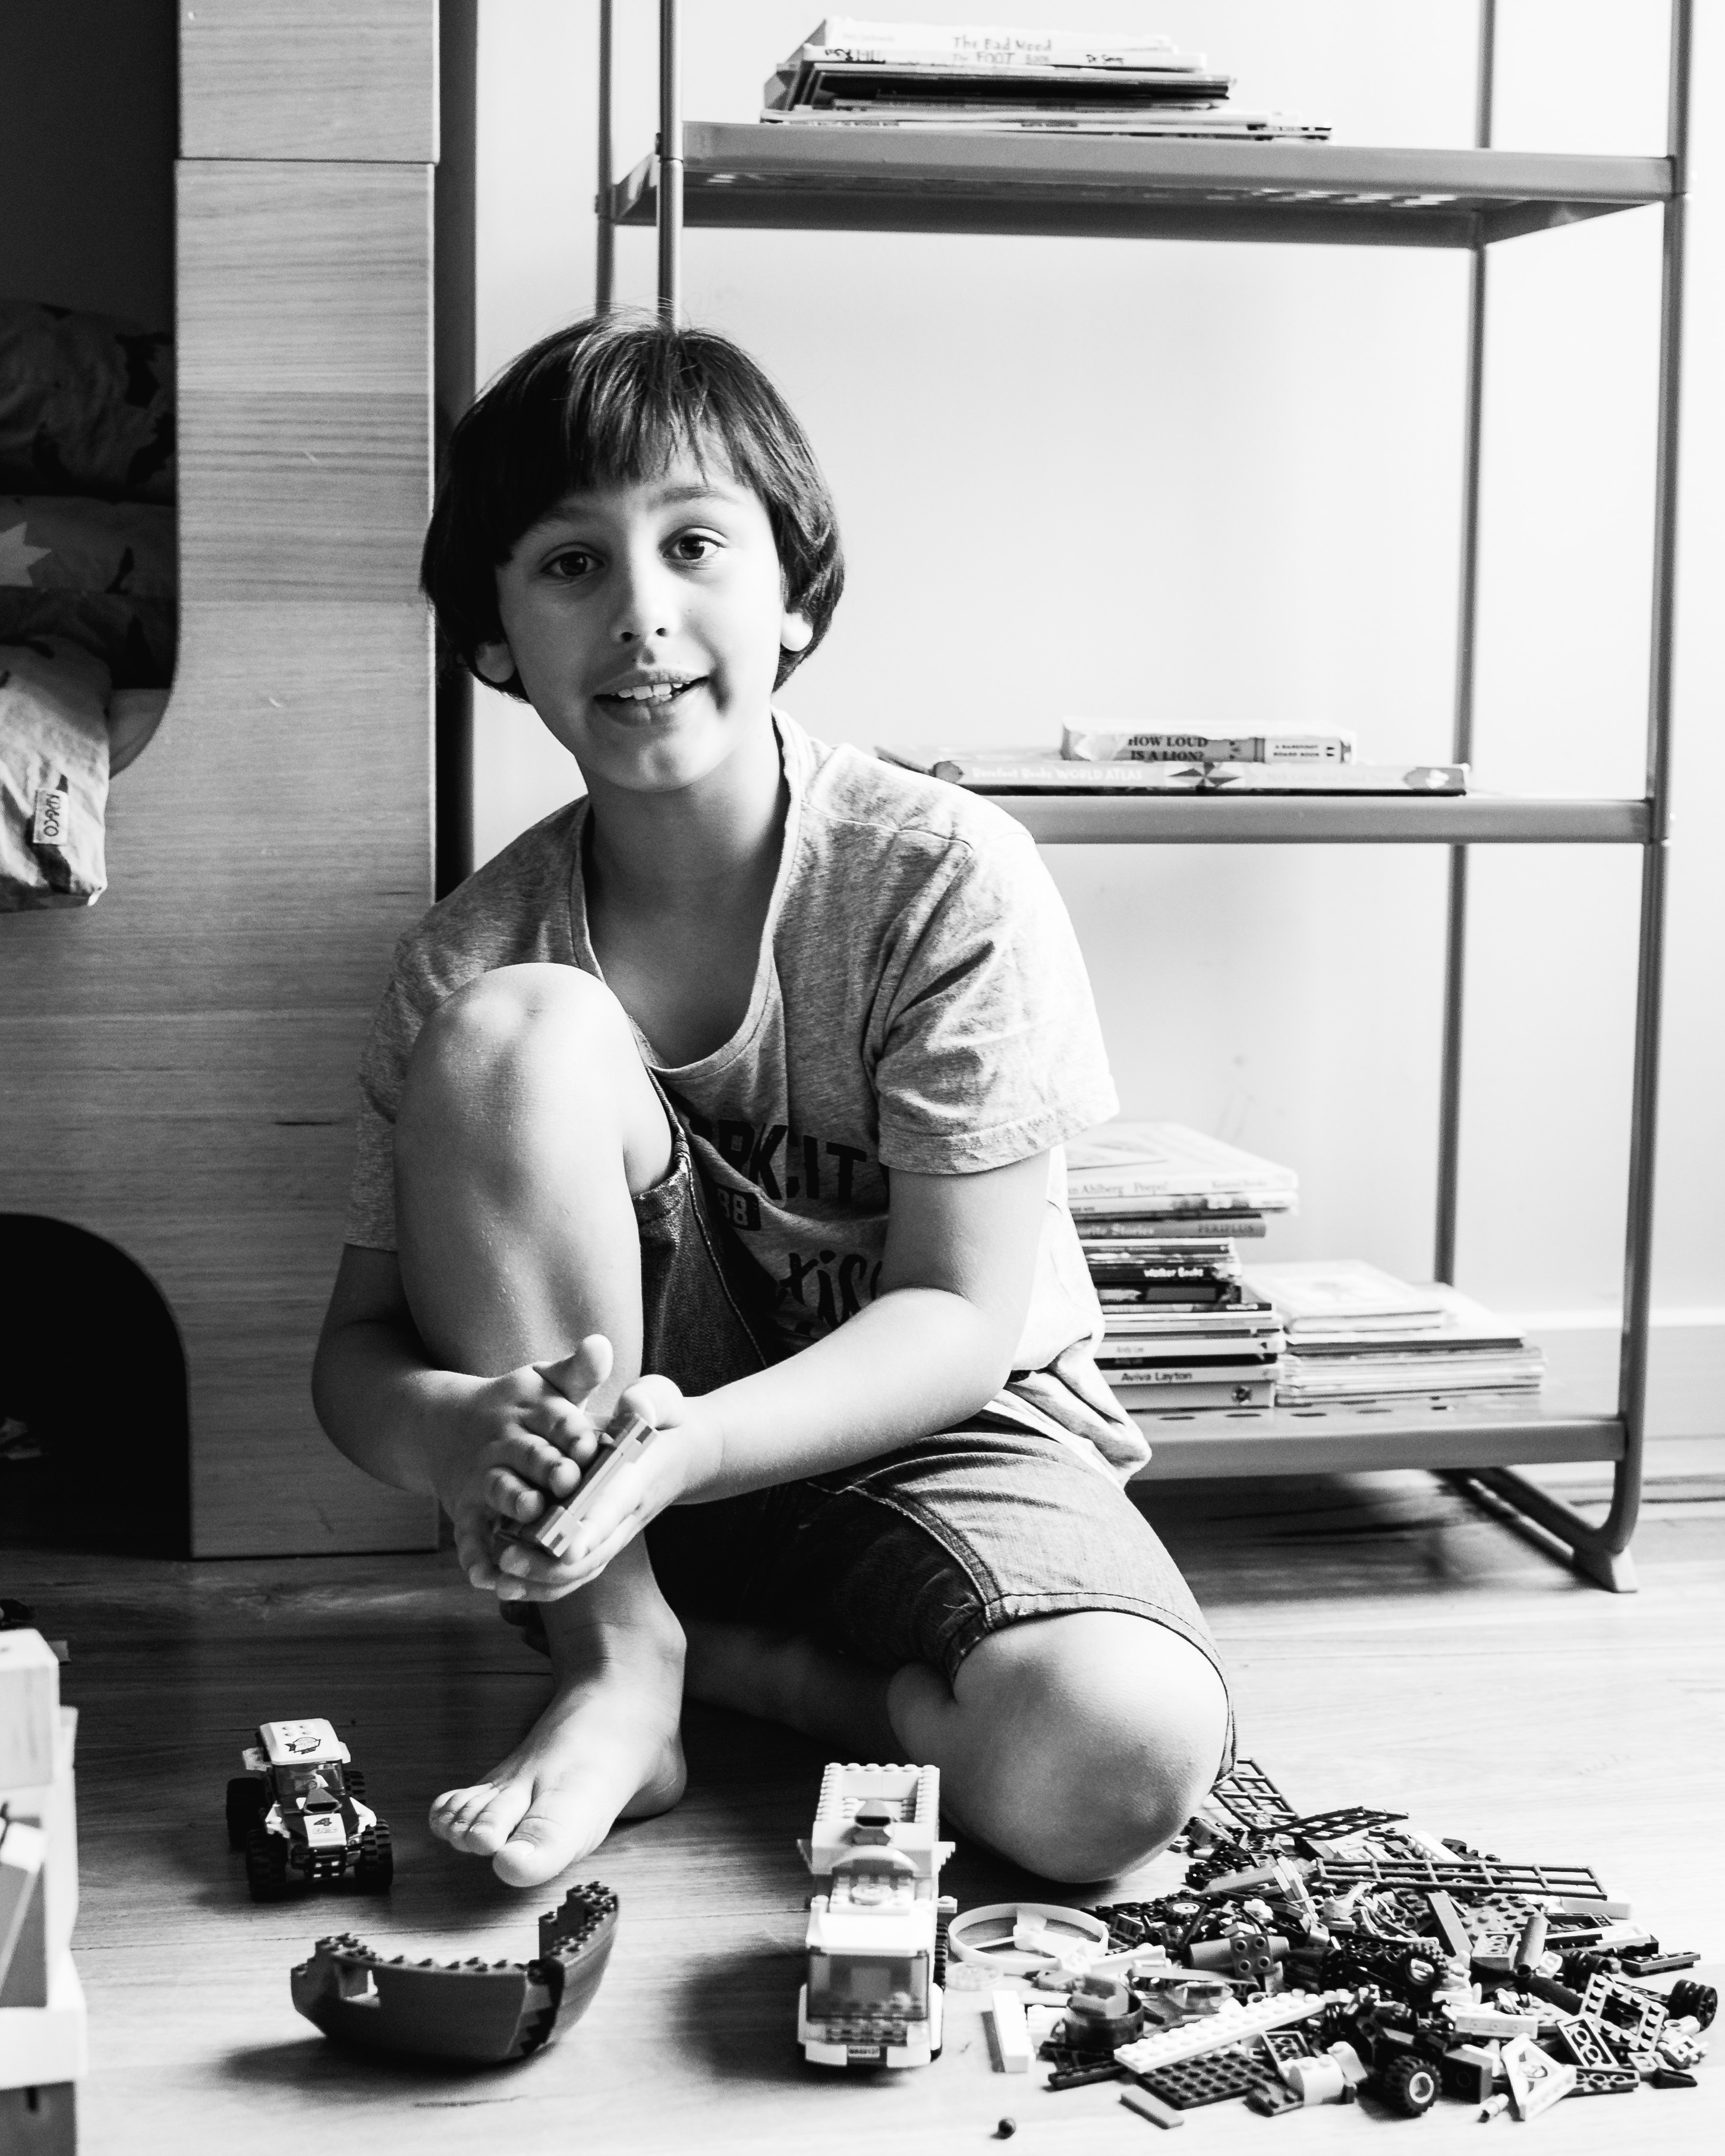 in-home session photograph of a boy talking while creating and building with Lego in his bedroom in Carlton North, Melbourne, Australia